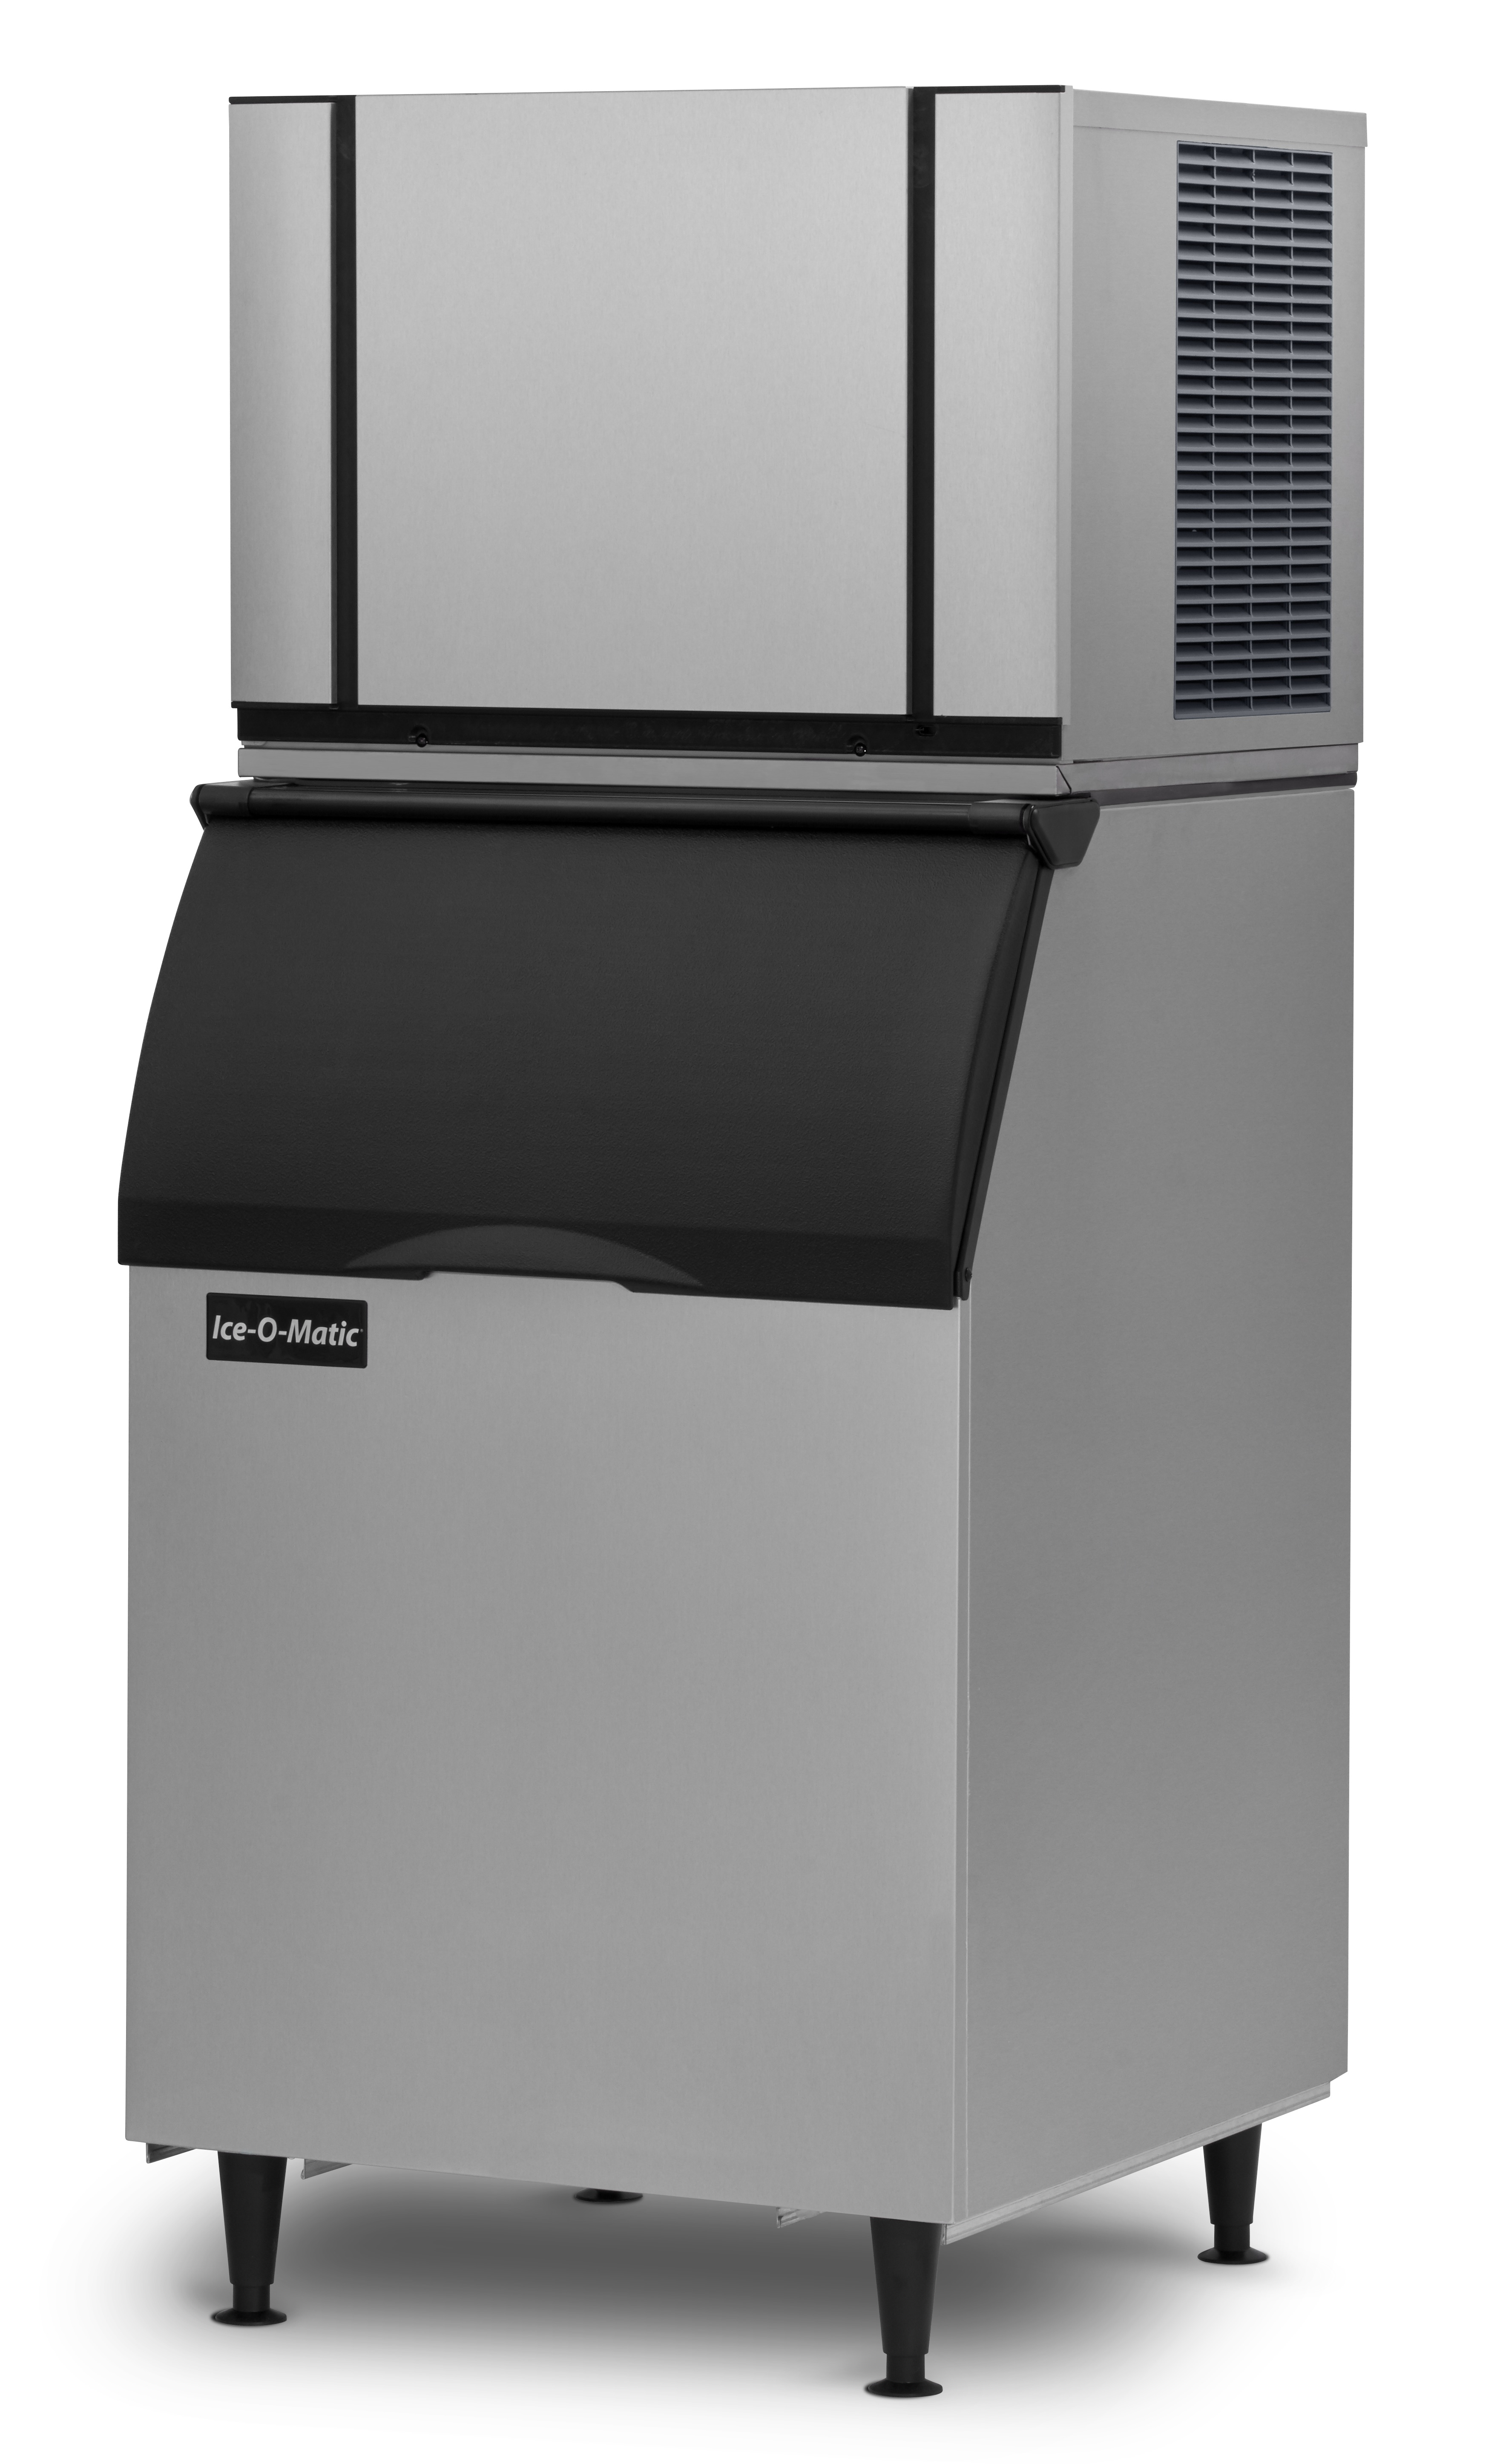 Ice-O-Matic Elevation series machine